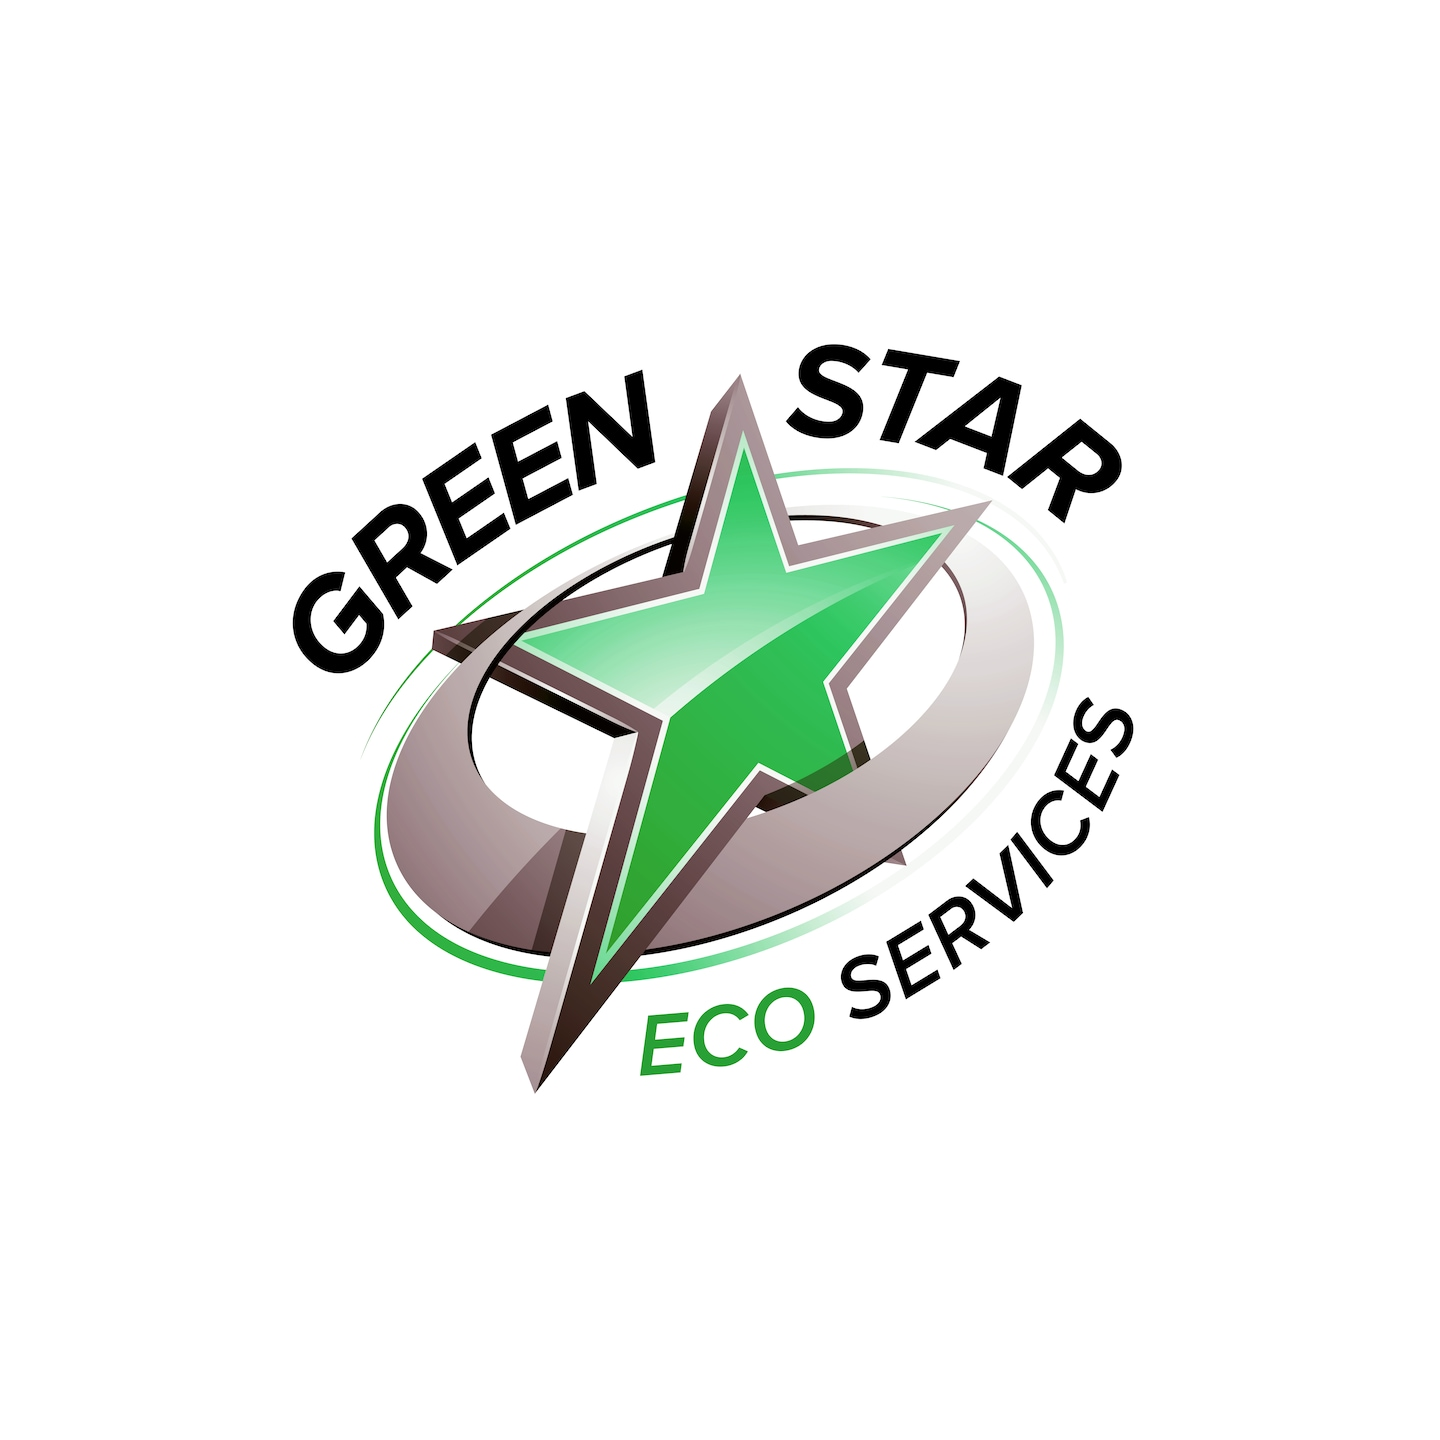 Green Star Eco Services